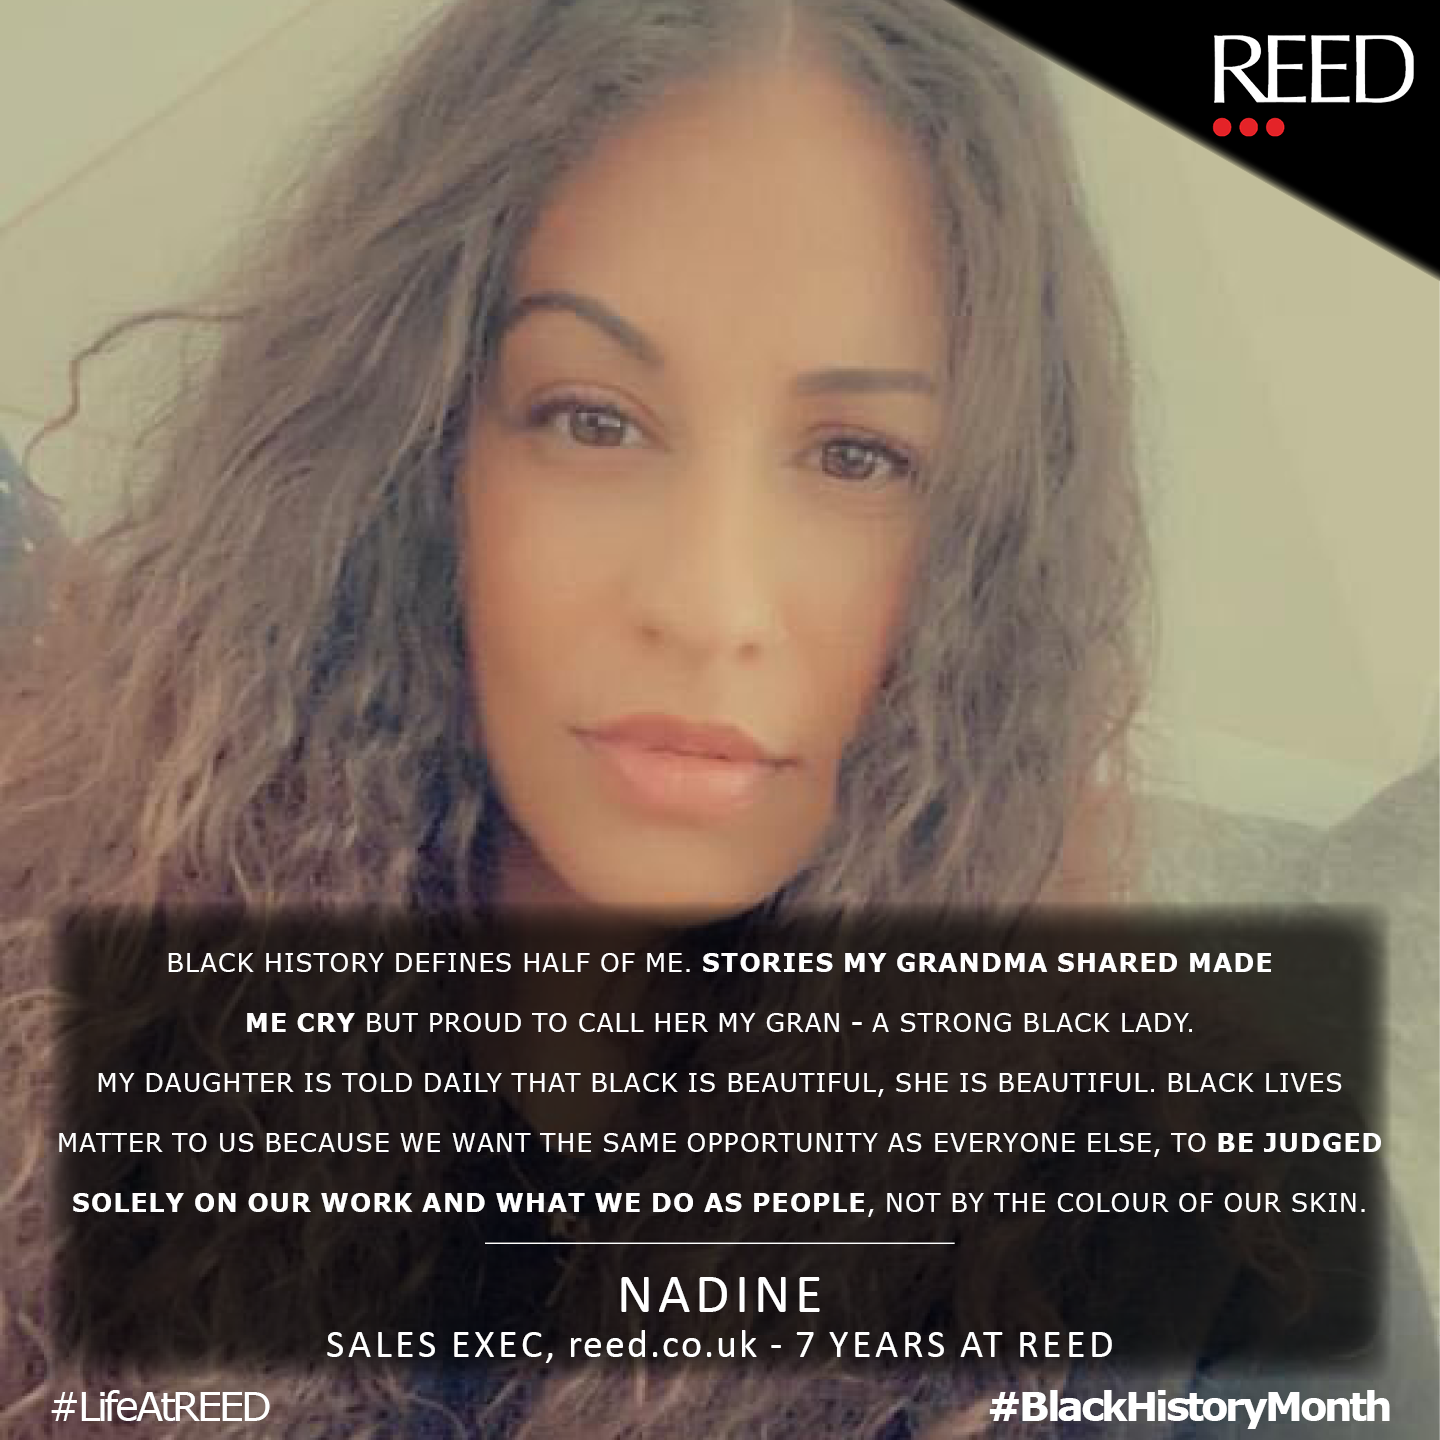 Nadine Seaman - what black history month means to me